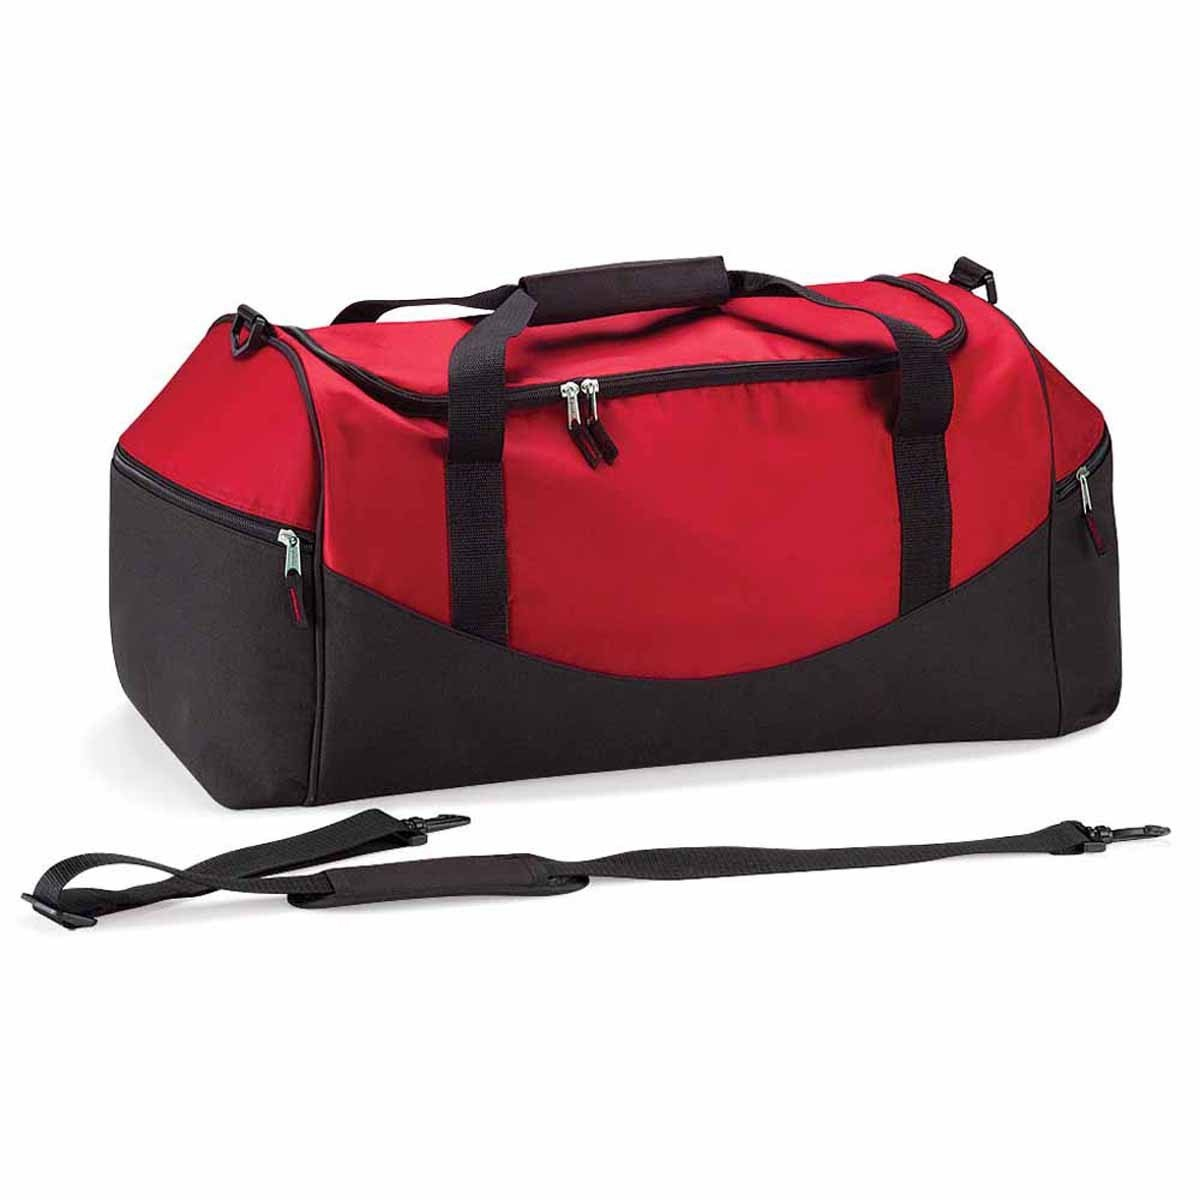 49dba58fbe Quadra - sac de sport 55 L - QS70 - TEAMWEAR HOLDALL - coloris rouge / noir:  Amazon.co.uk: Luggage